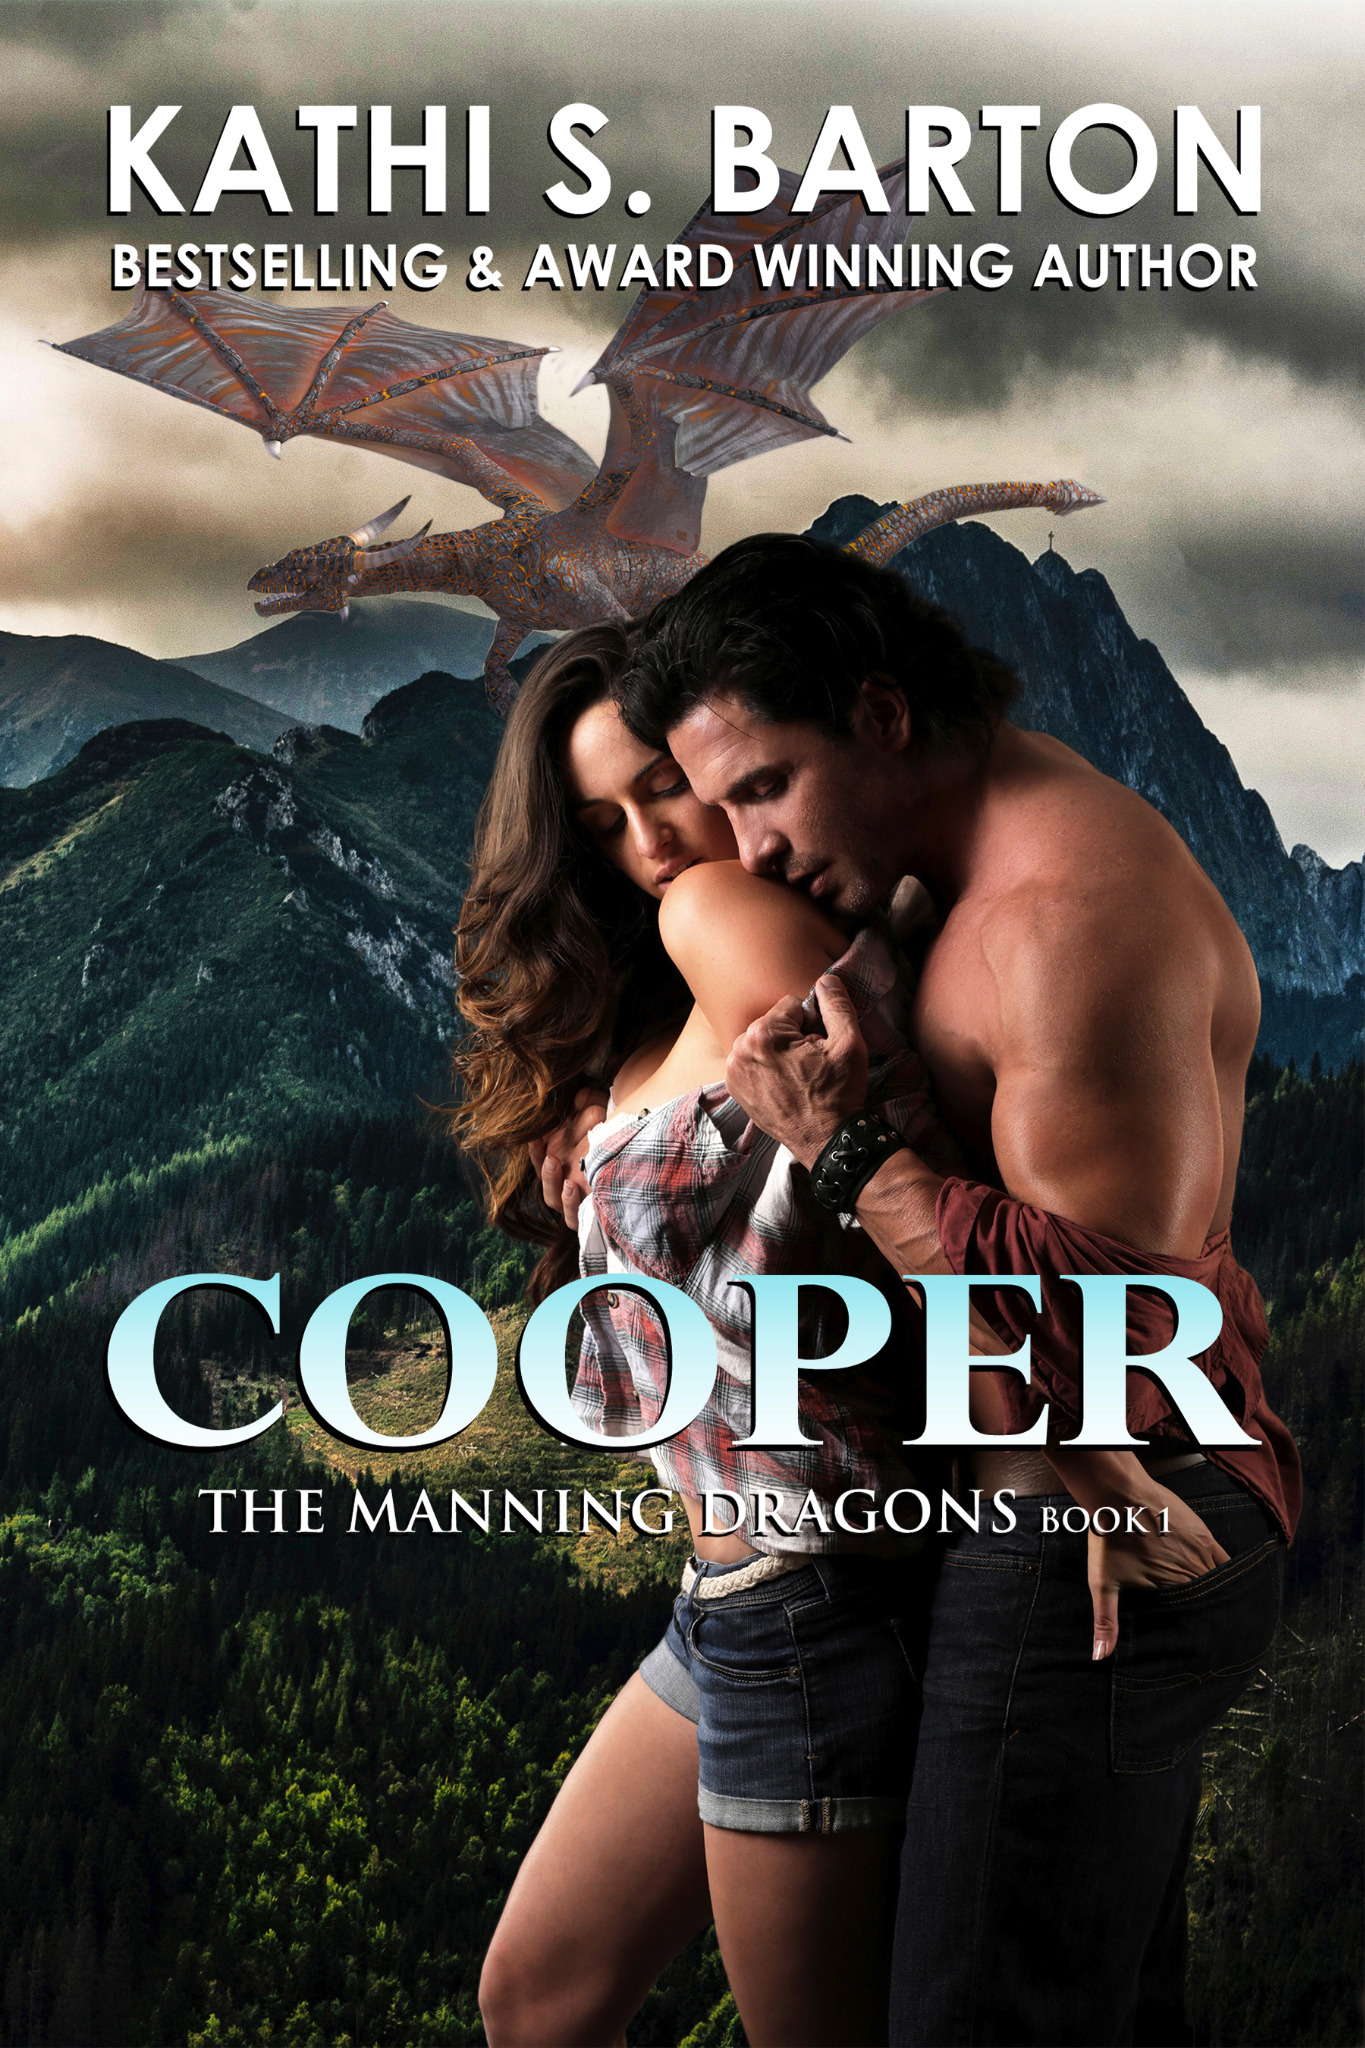 Cooper - The Manning Dragons Book 1